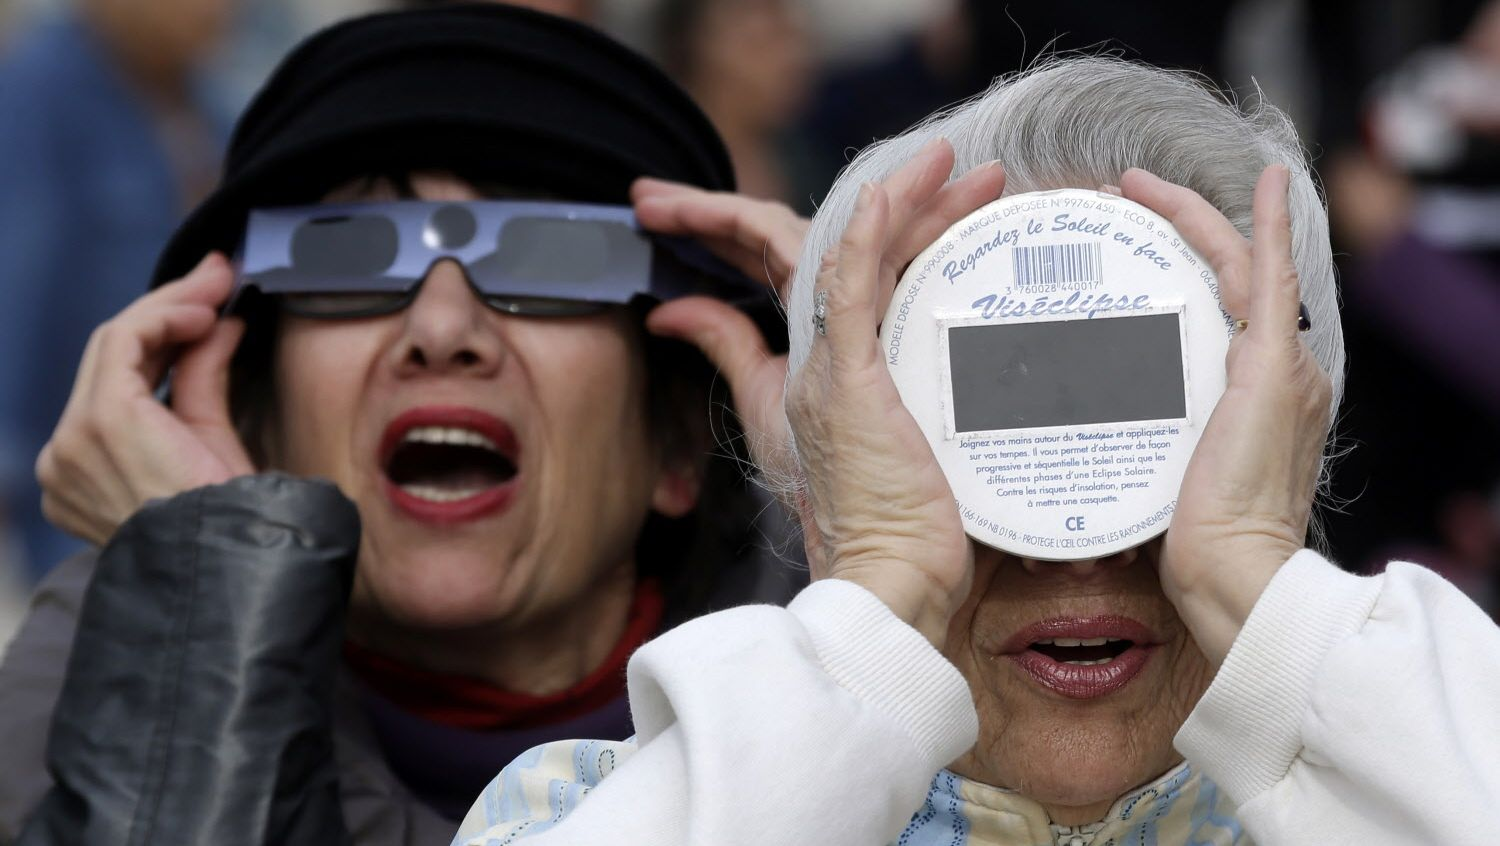 People look at a solar eclipse in the sky of Nice, southeastern France, Friday, March 20, 2015.  (AP Photo/Lionel Cironneau)